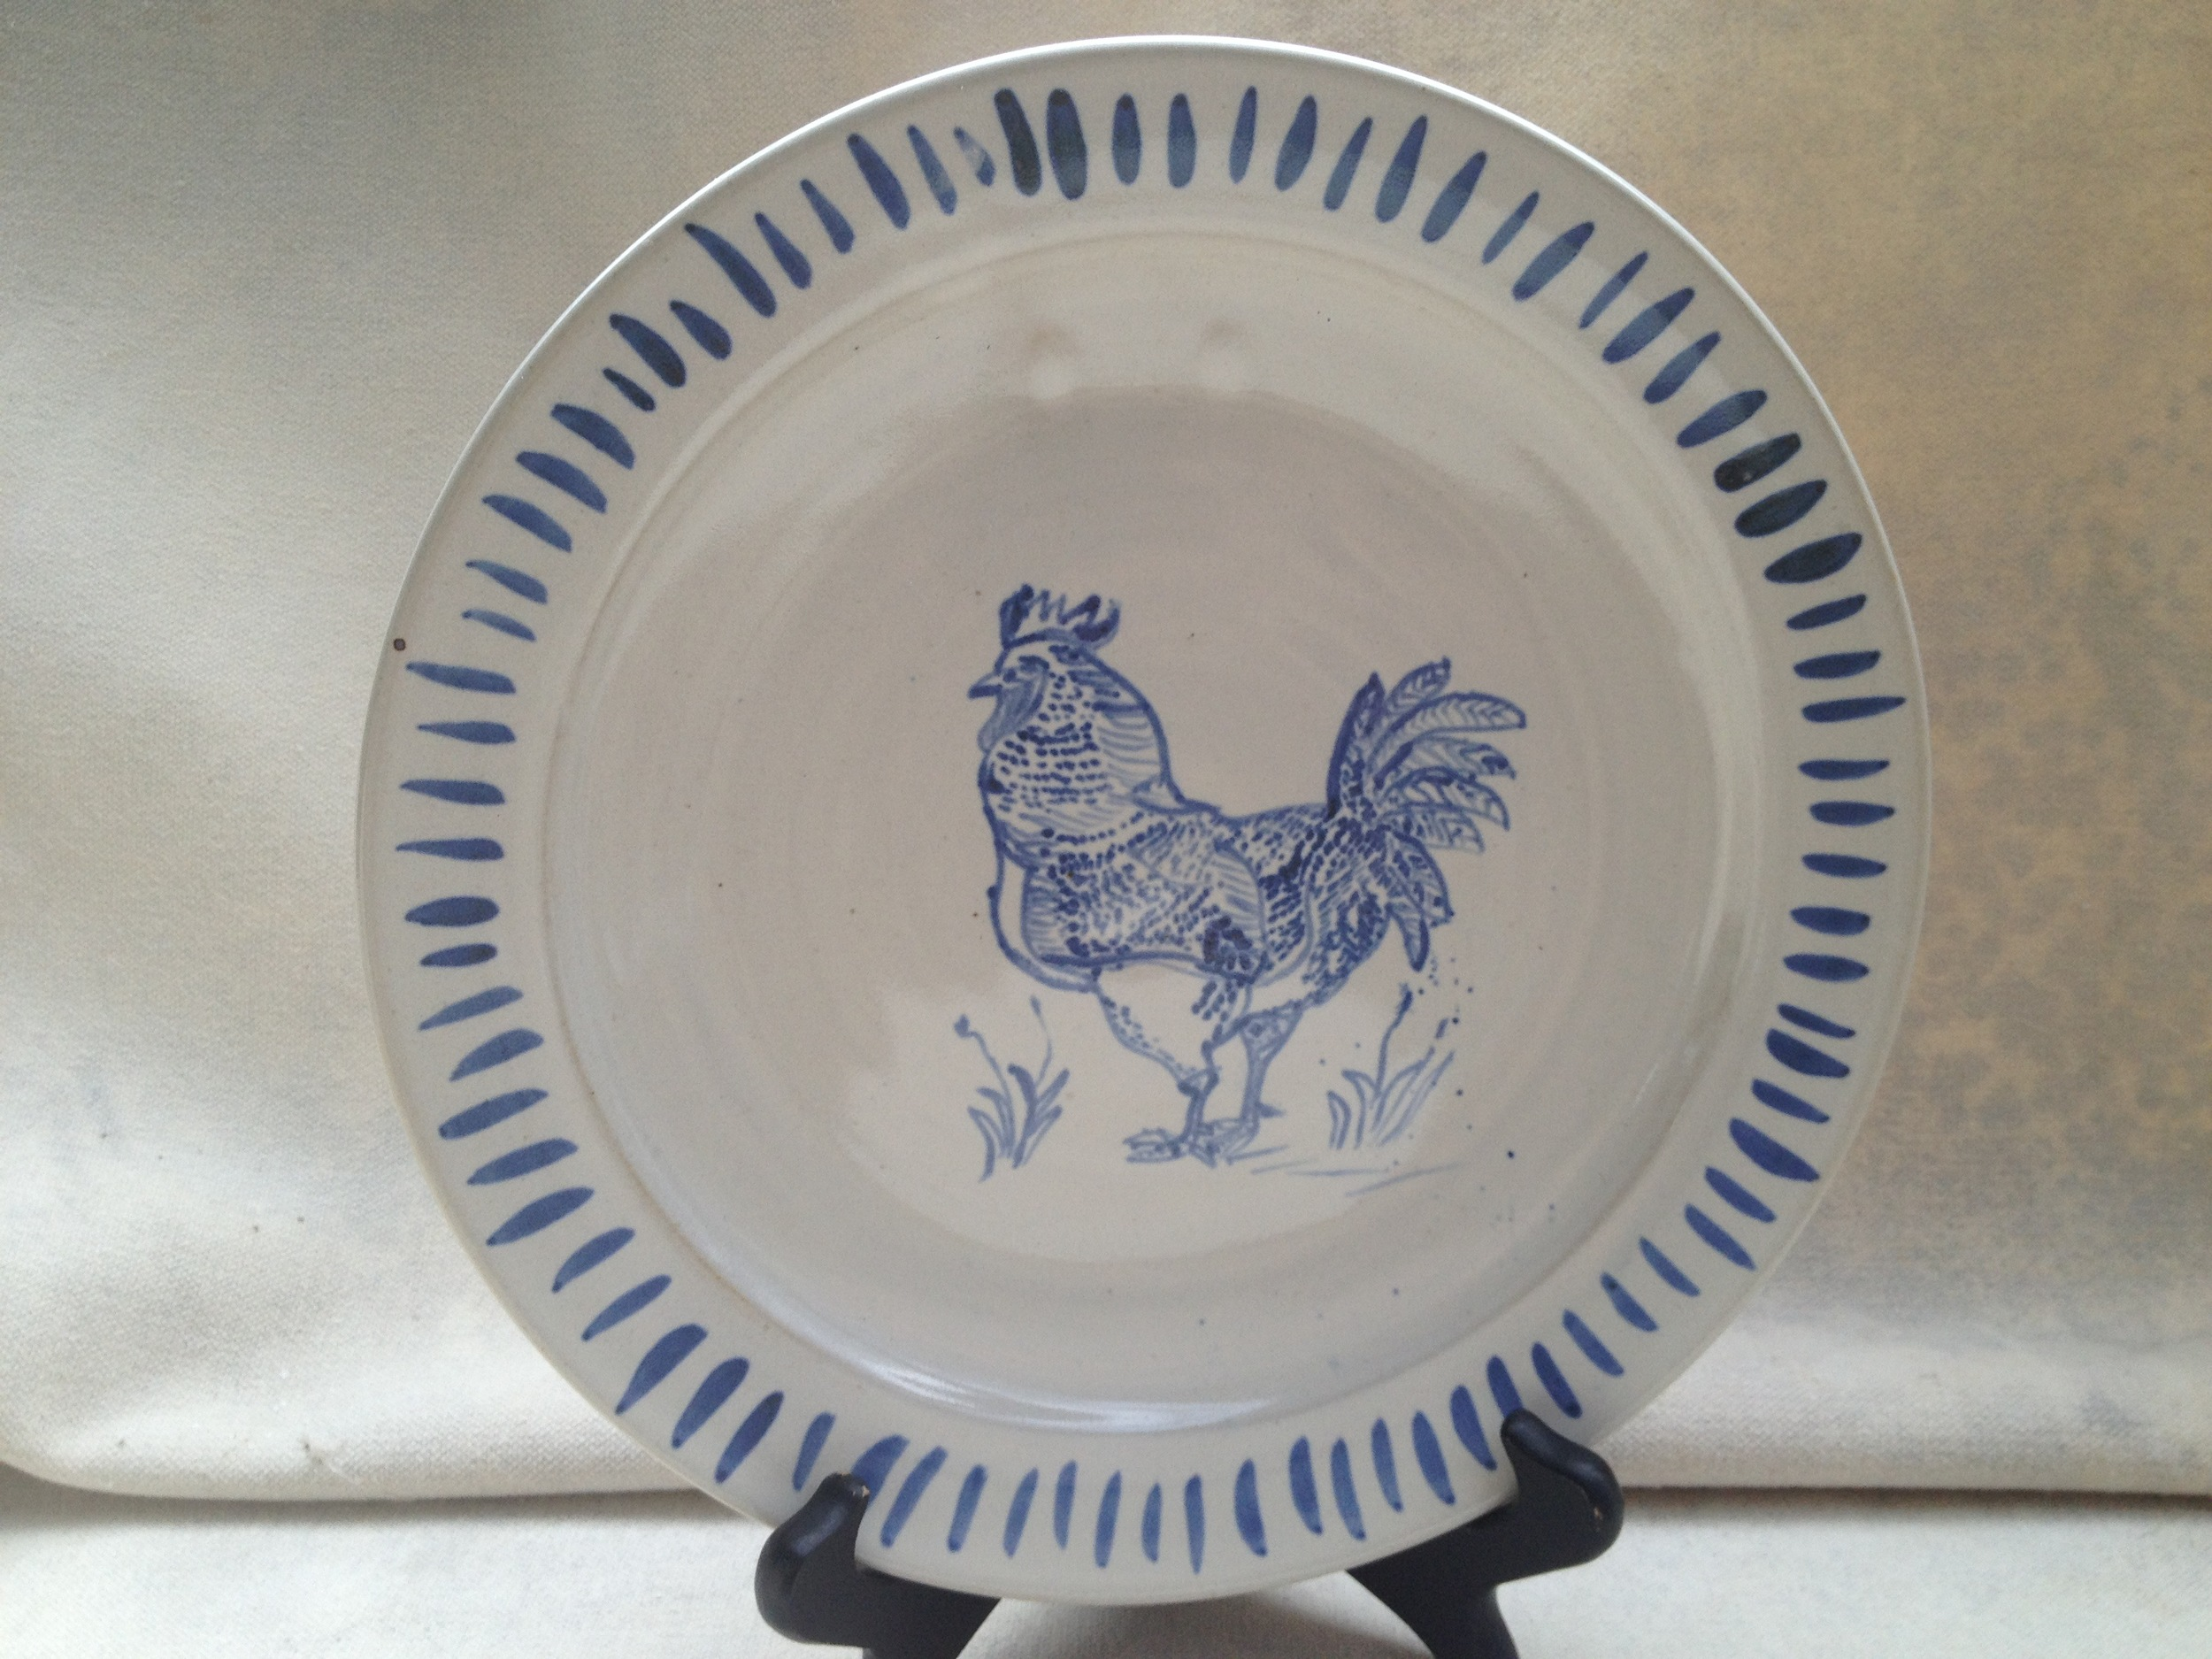 Rooster plate with border